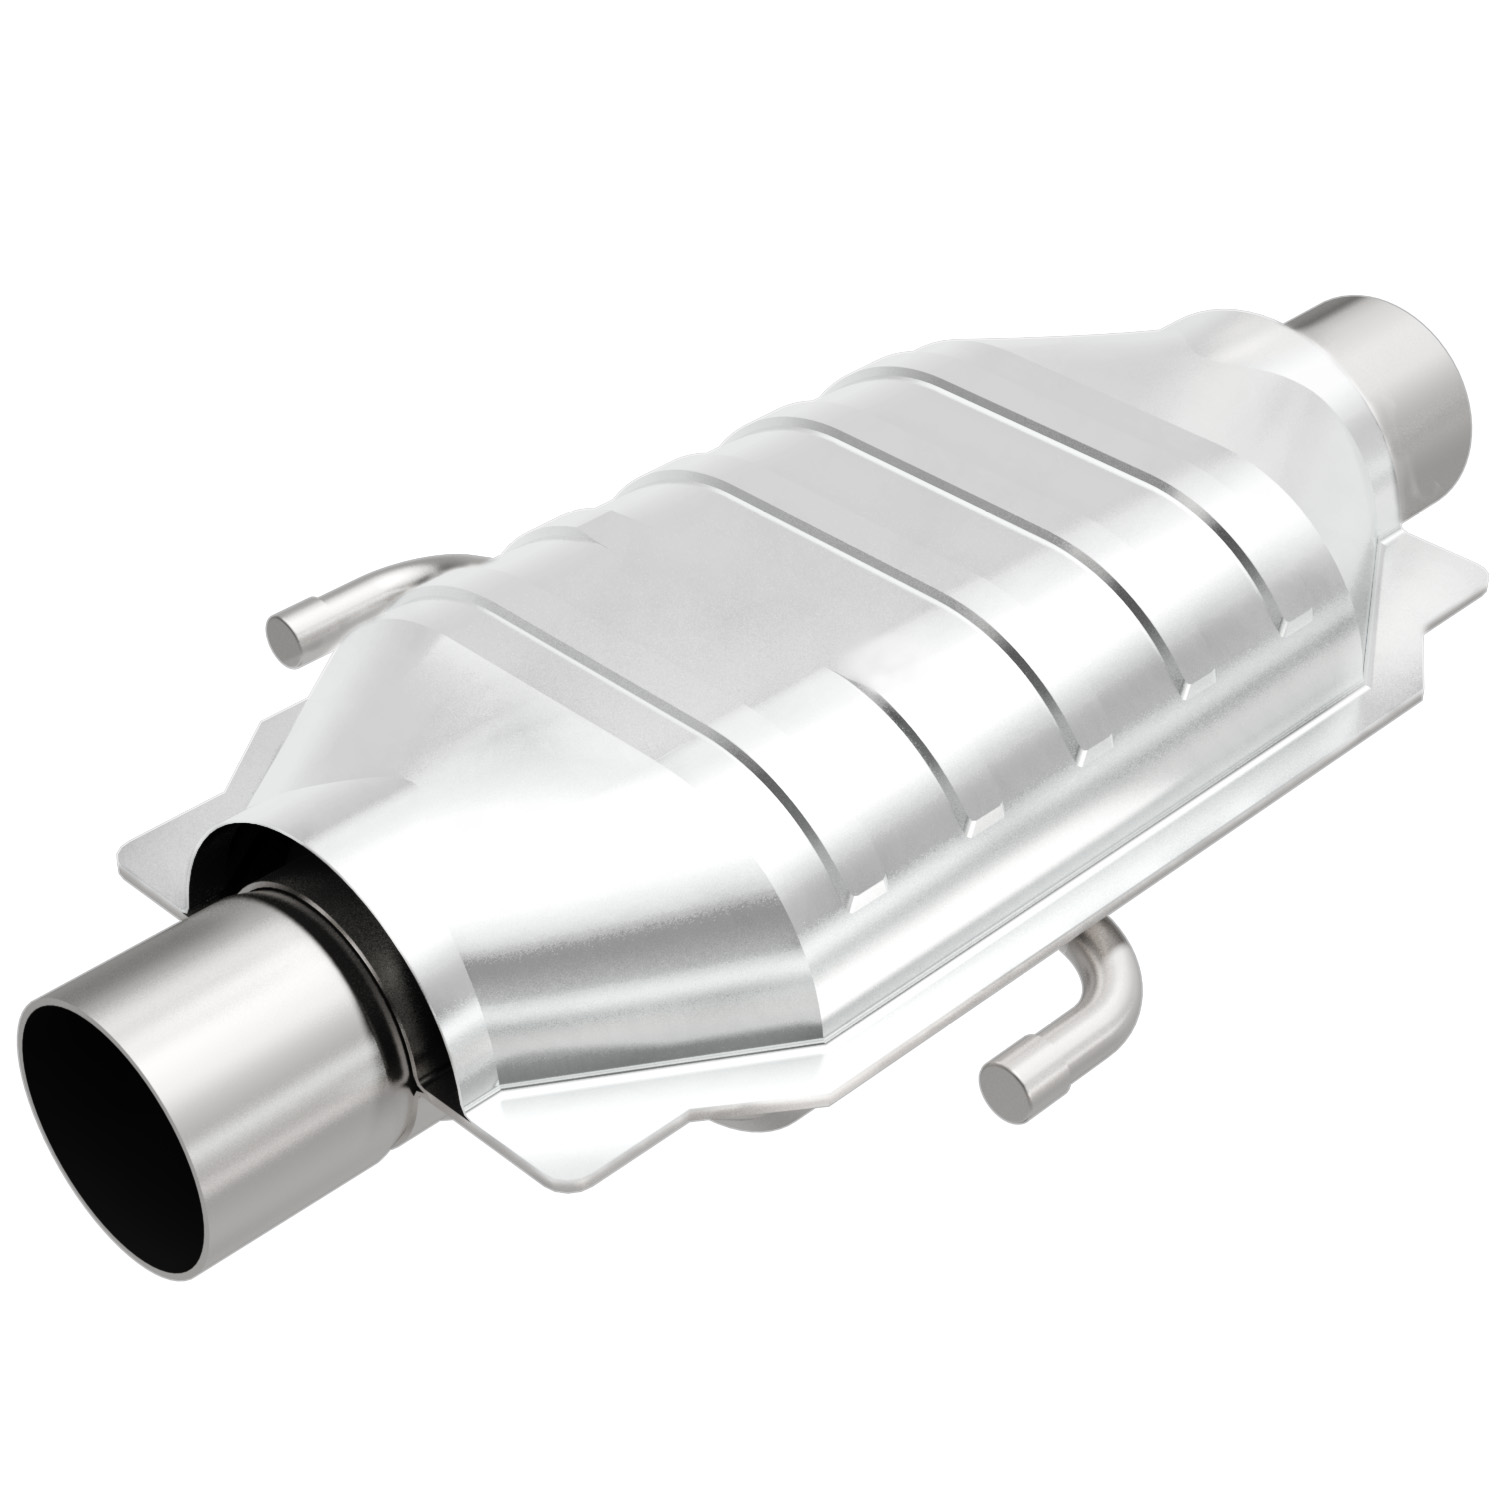 Magnaflow 2 Universal California Pre Obdii Catalytic Converter Free Shipping